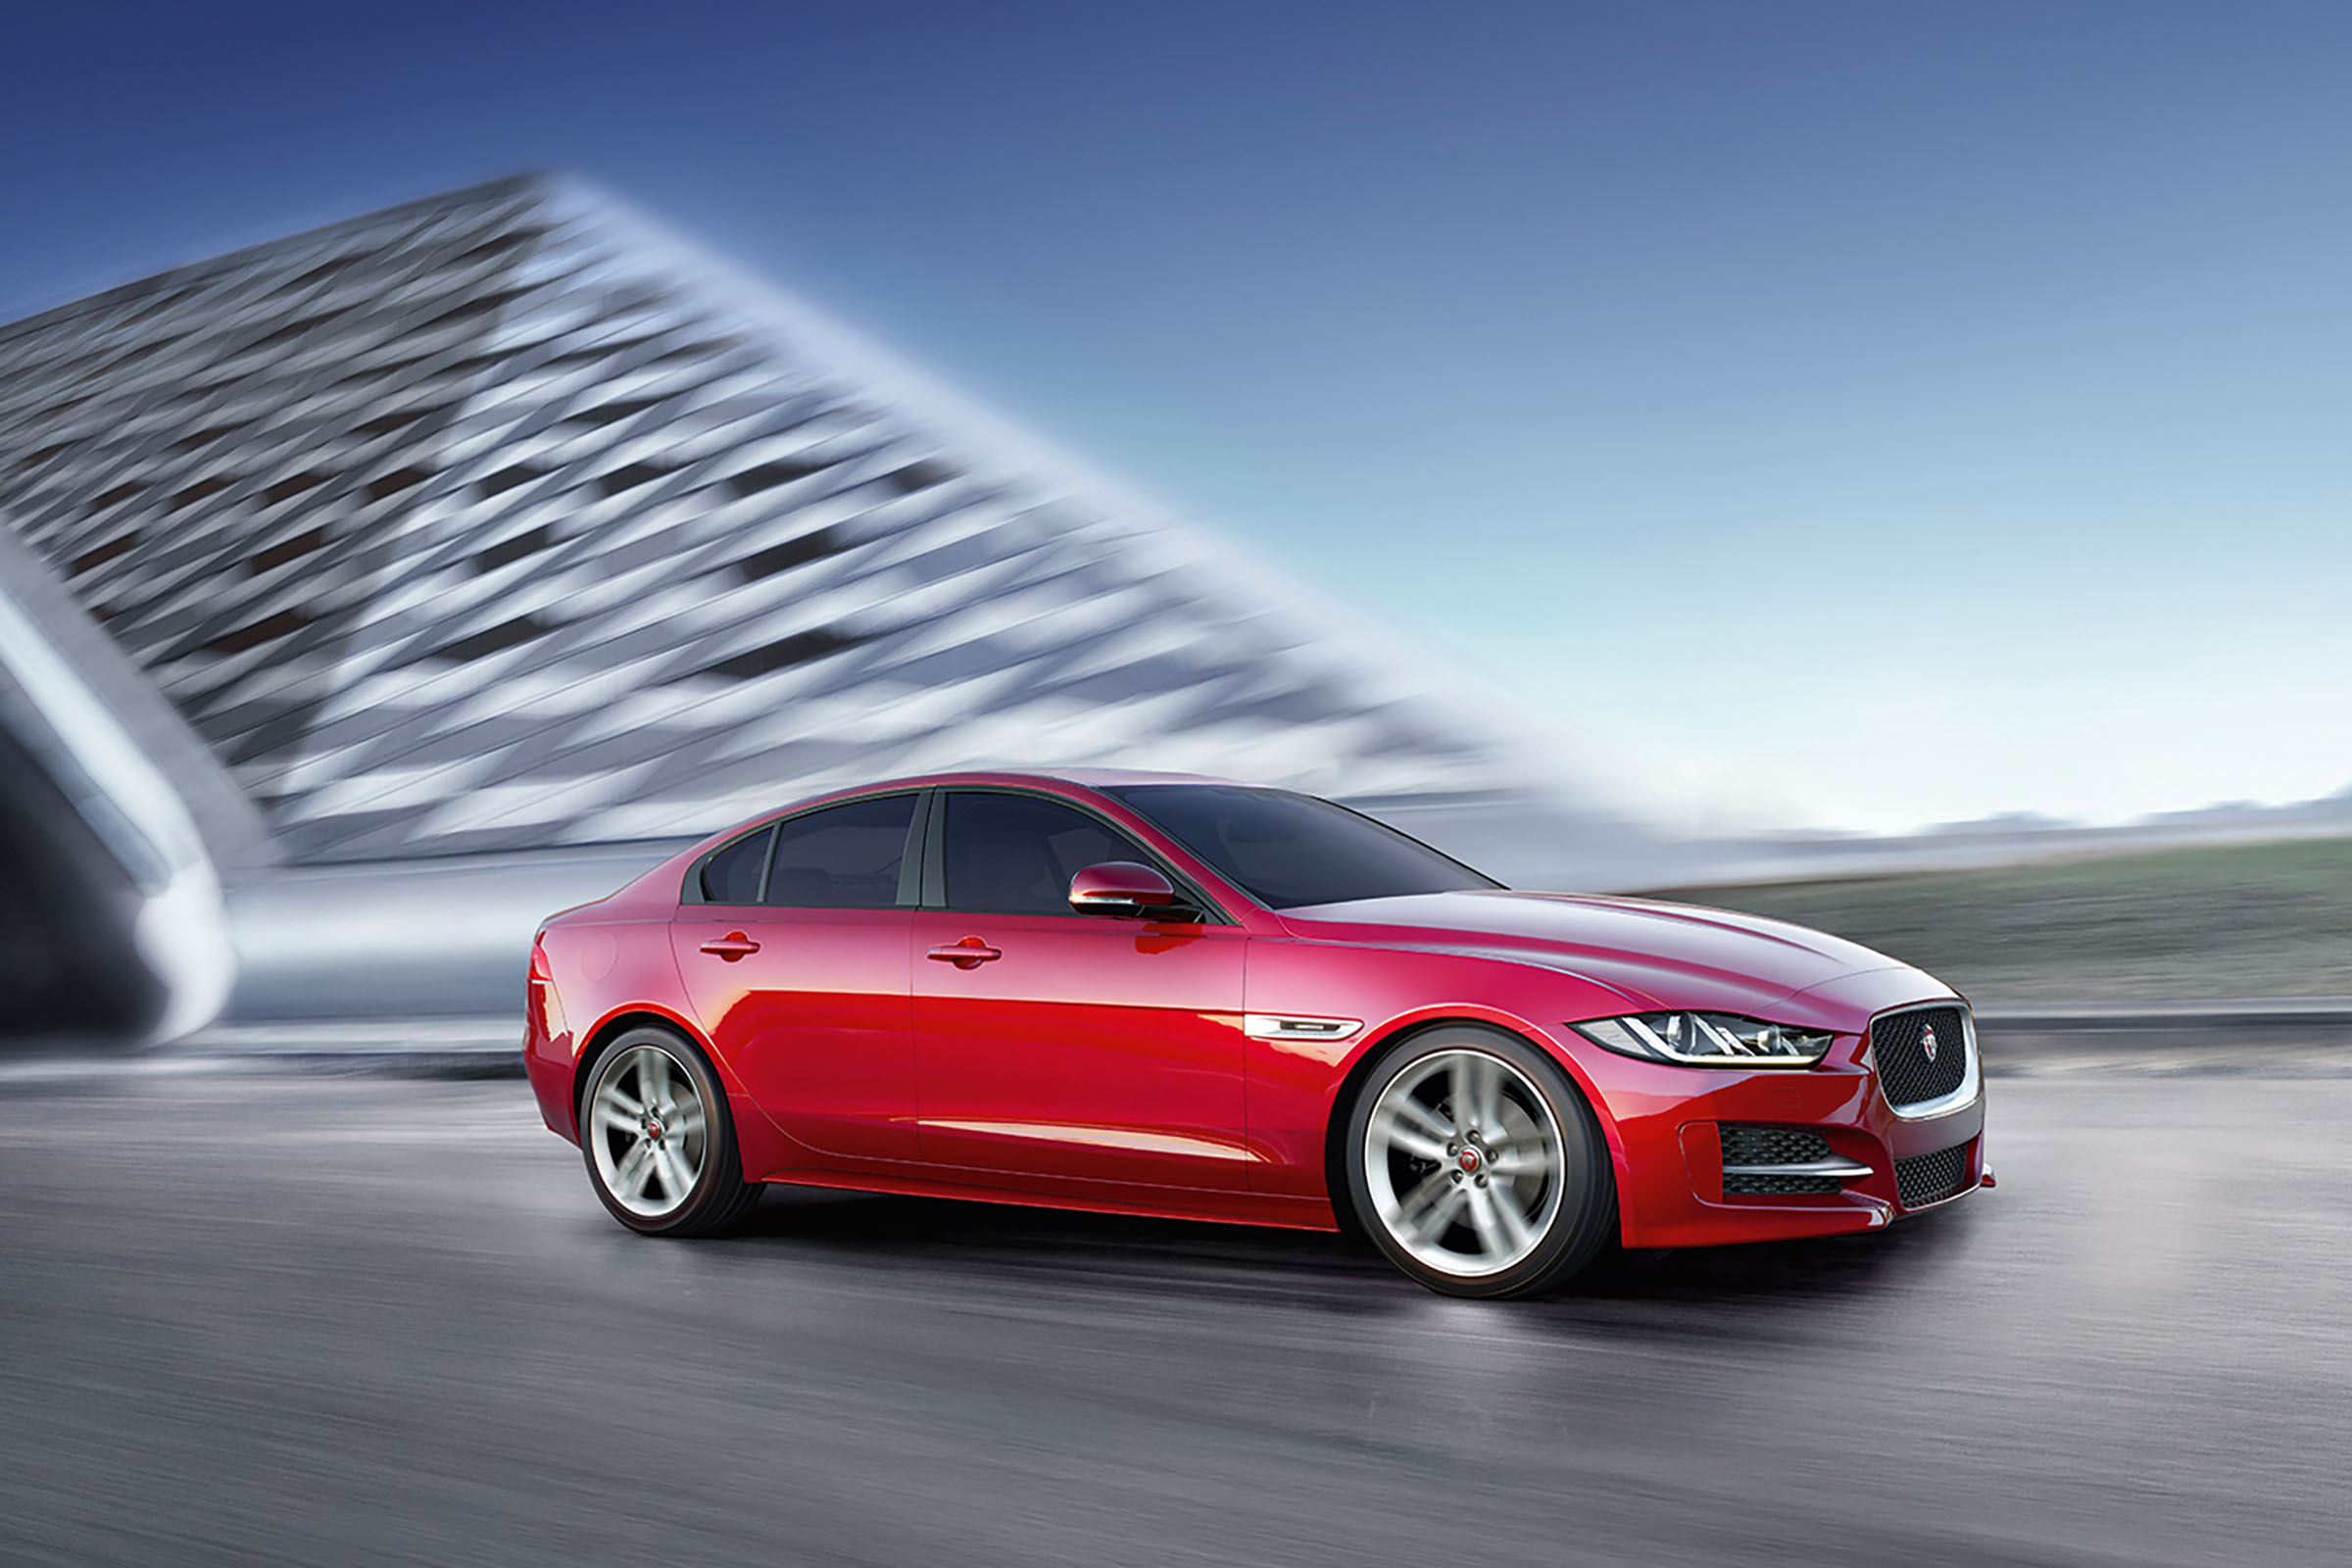 Why the Jaguar XE is Auto Express Compact Executive Car of the Year | Auto Express